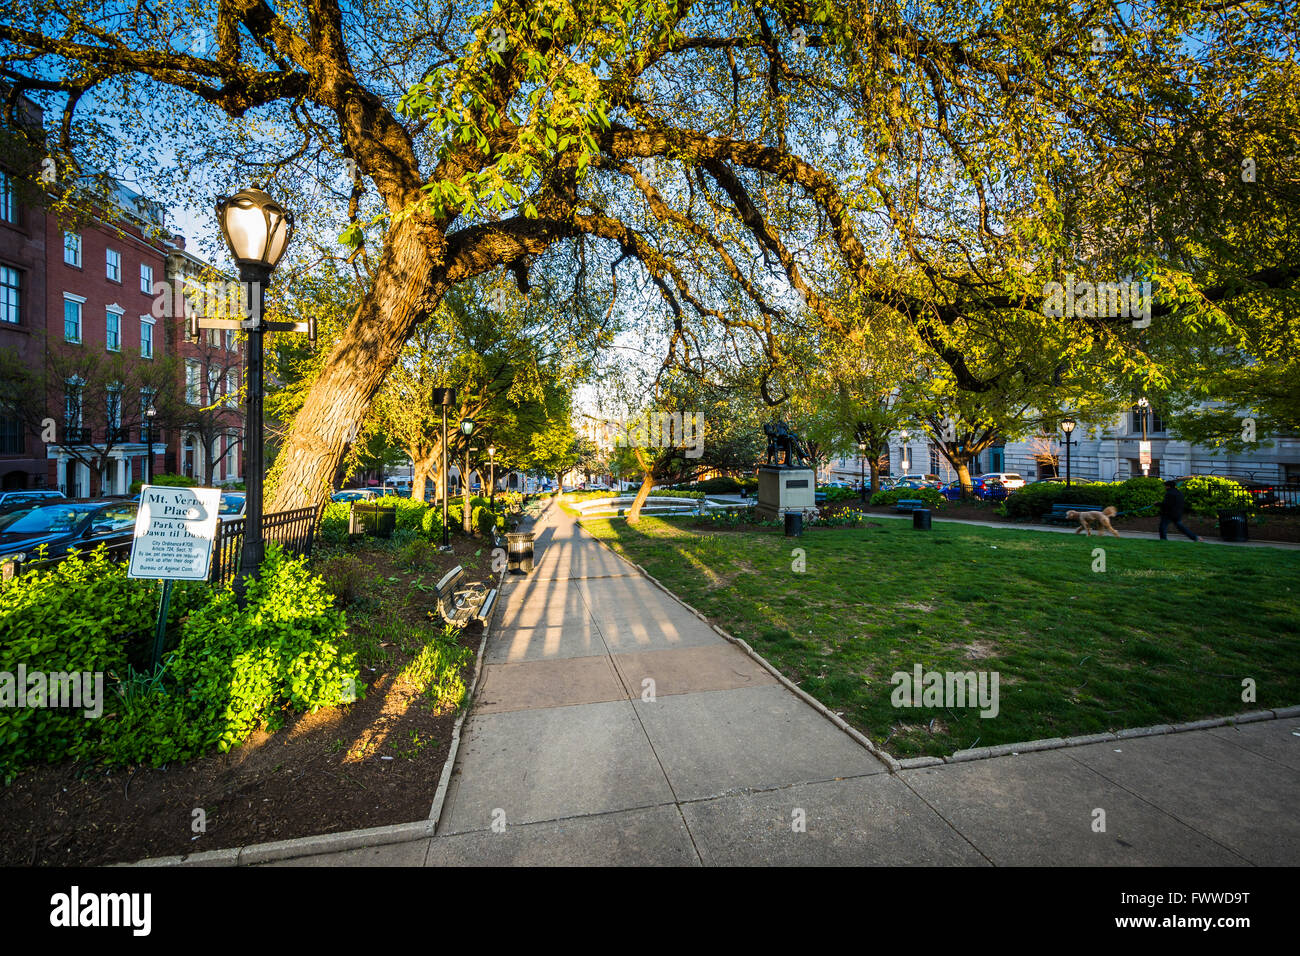 Trees and walkway at a park in Mount Vernon, Baltimore, Maryland. Stock Photo